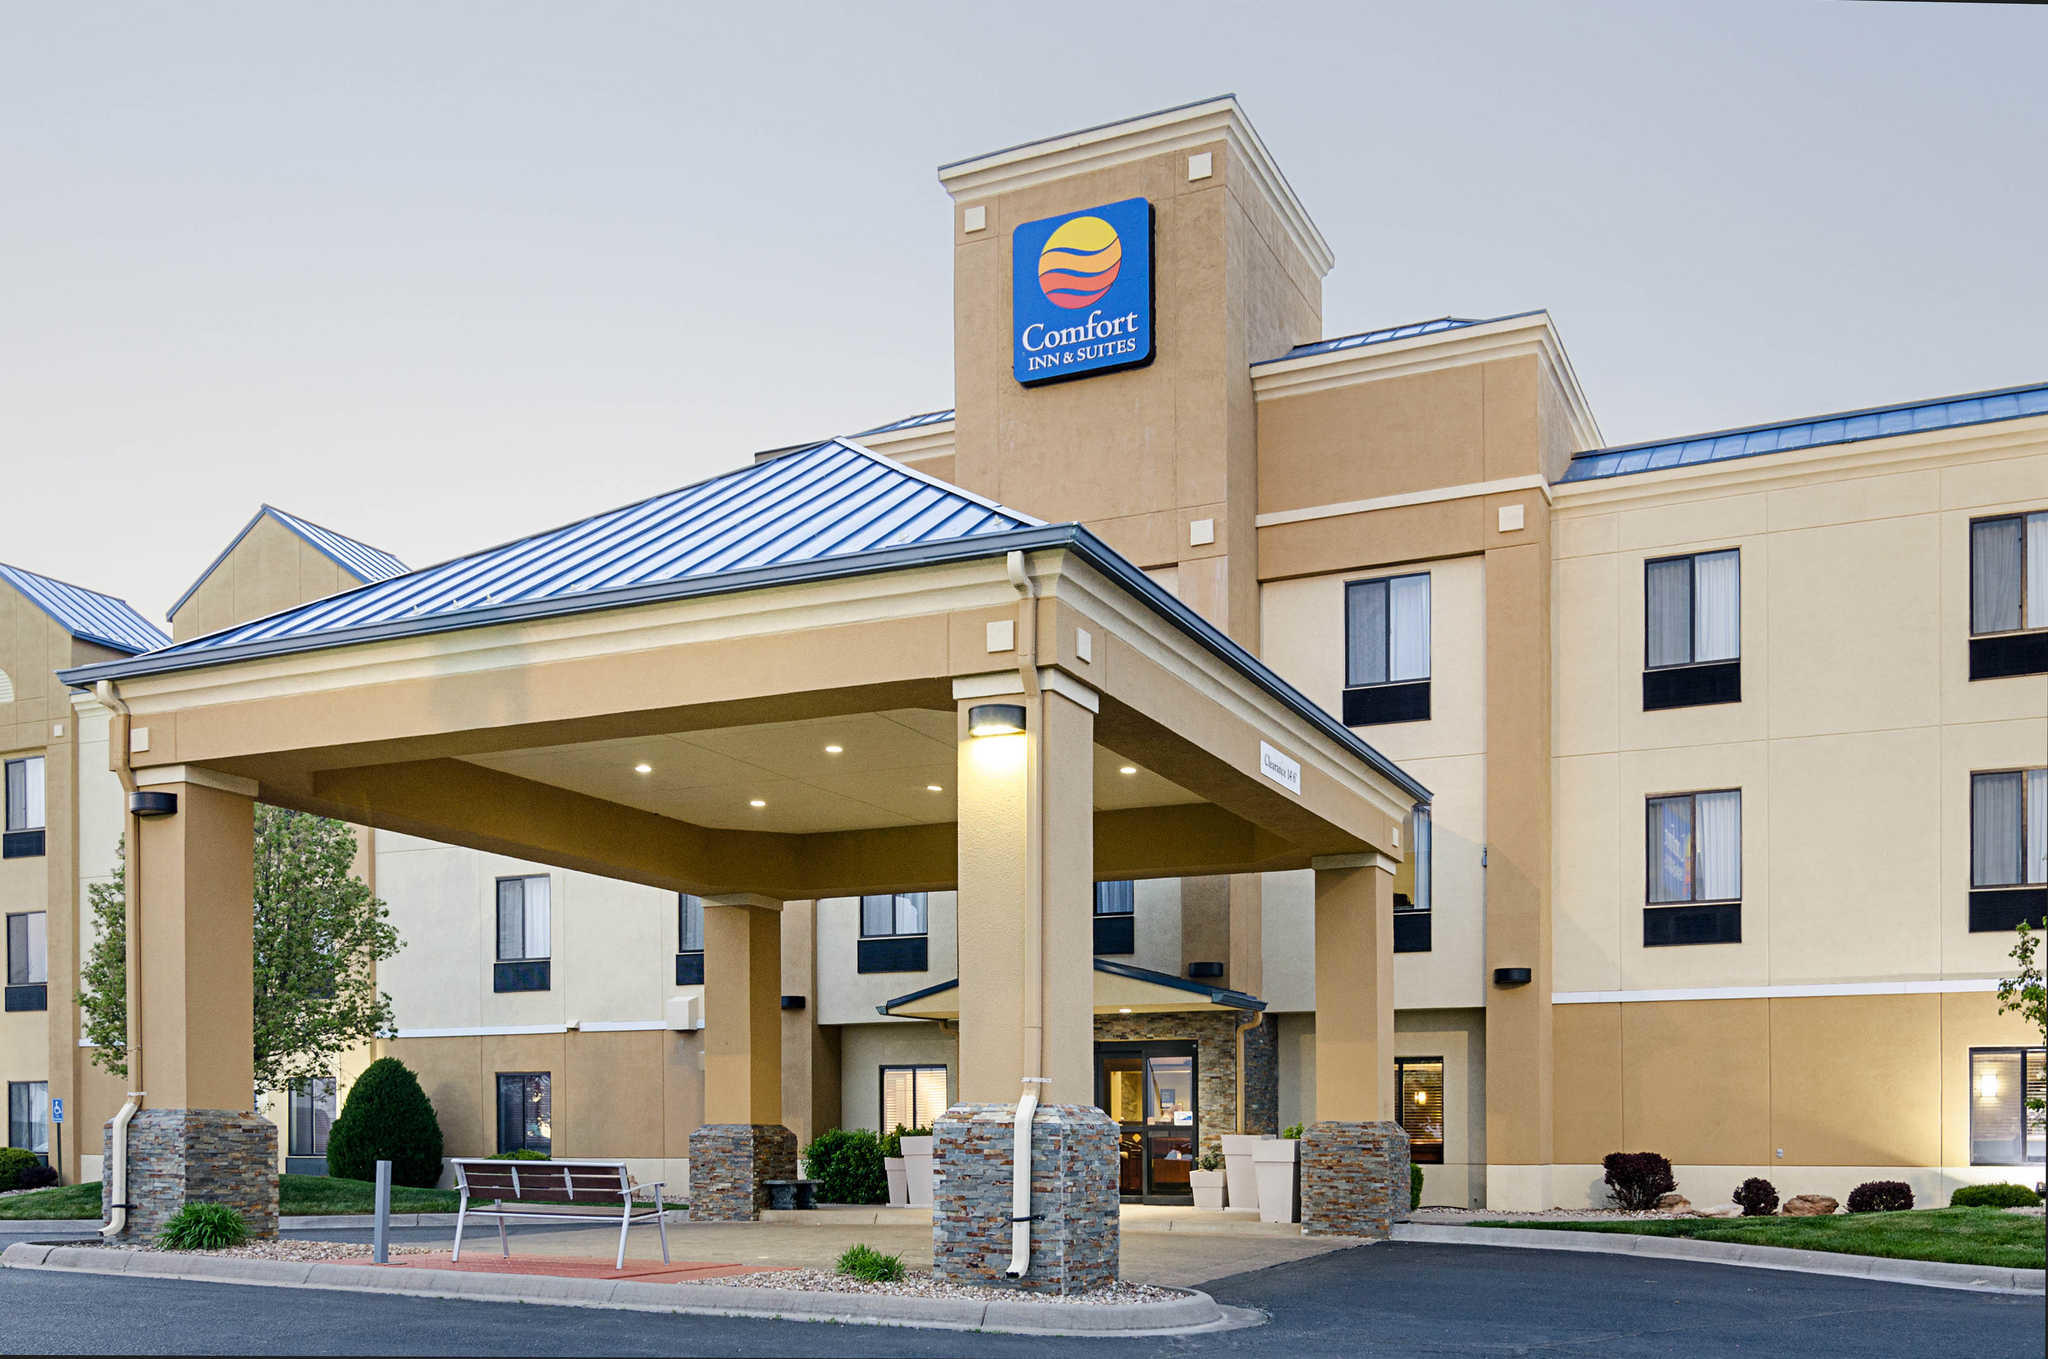 krause sleeper sofa black leather full comfort inn and suites coupons hutchinson ks near me 8coupons